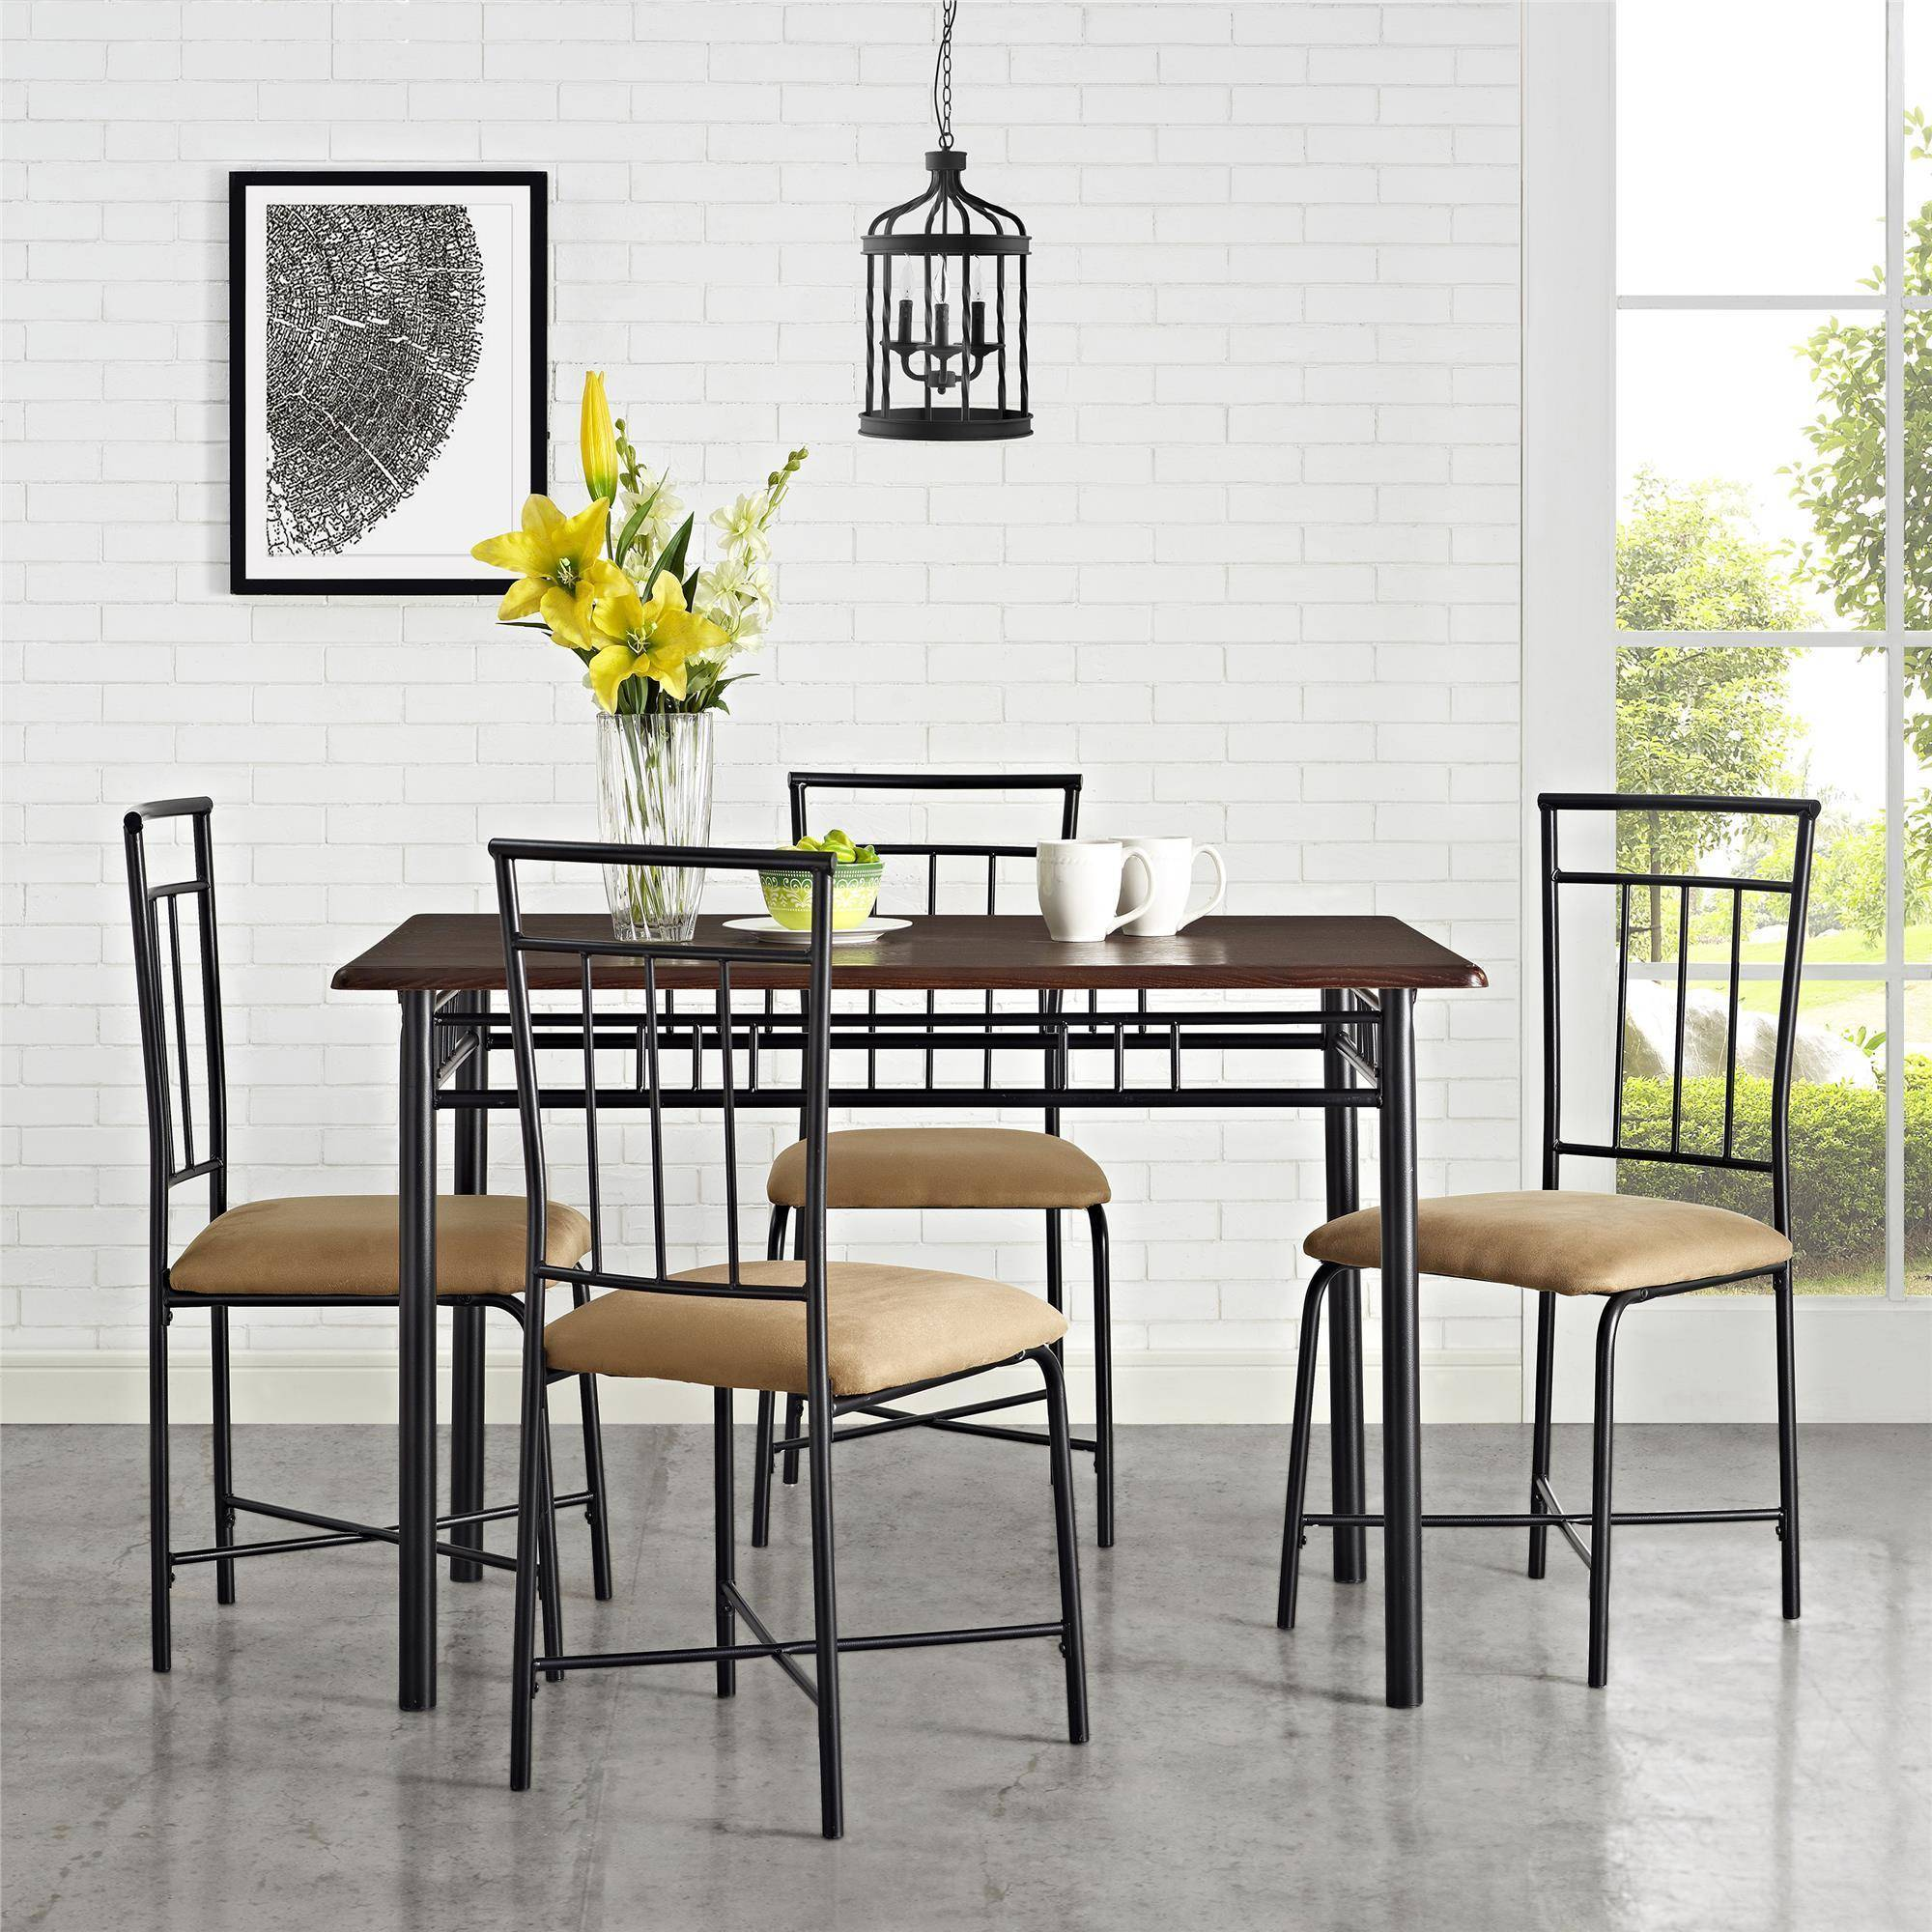 dining table set for 5. mainstays 5-piece dining set, multiple colors table set for 5